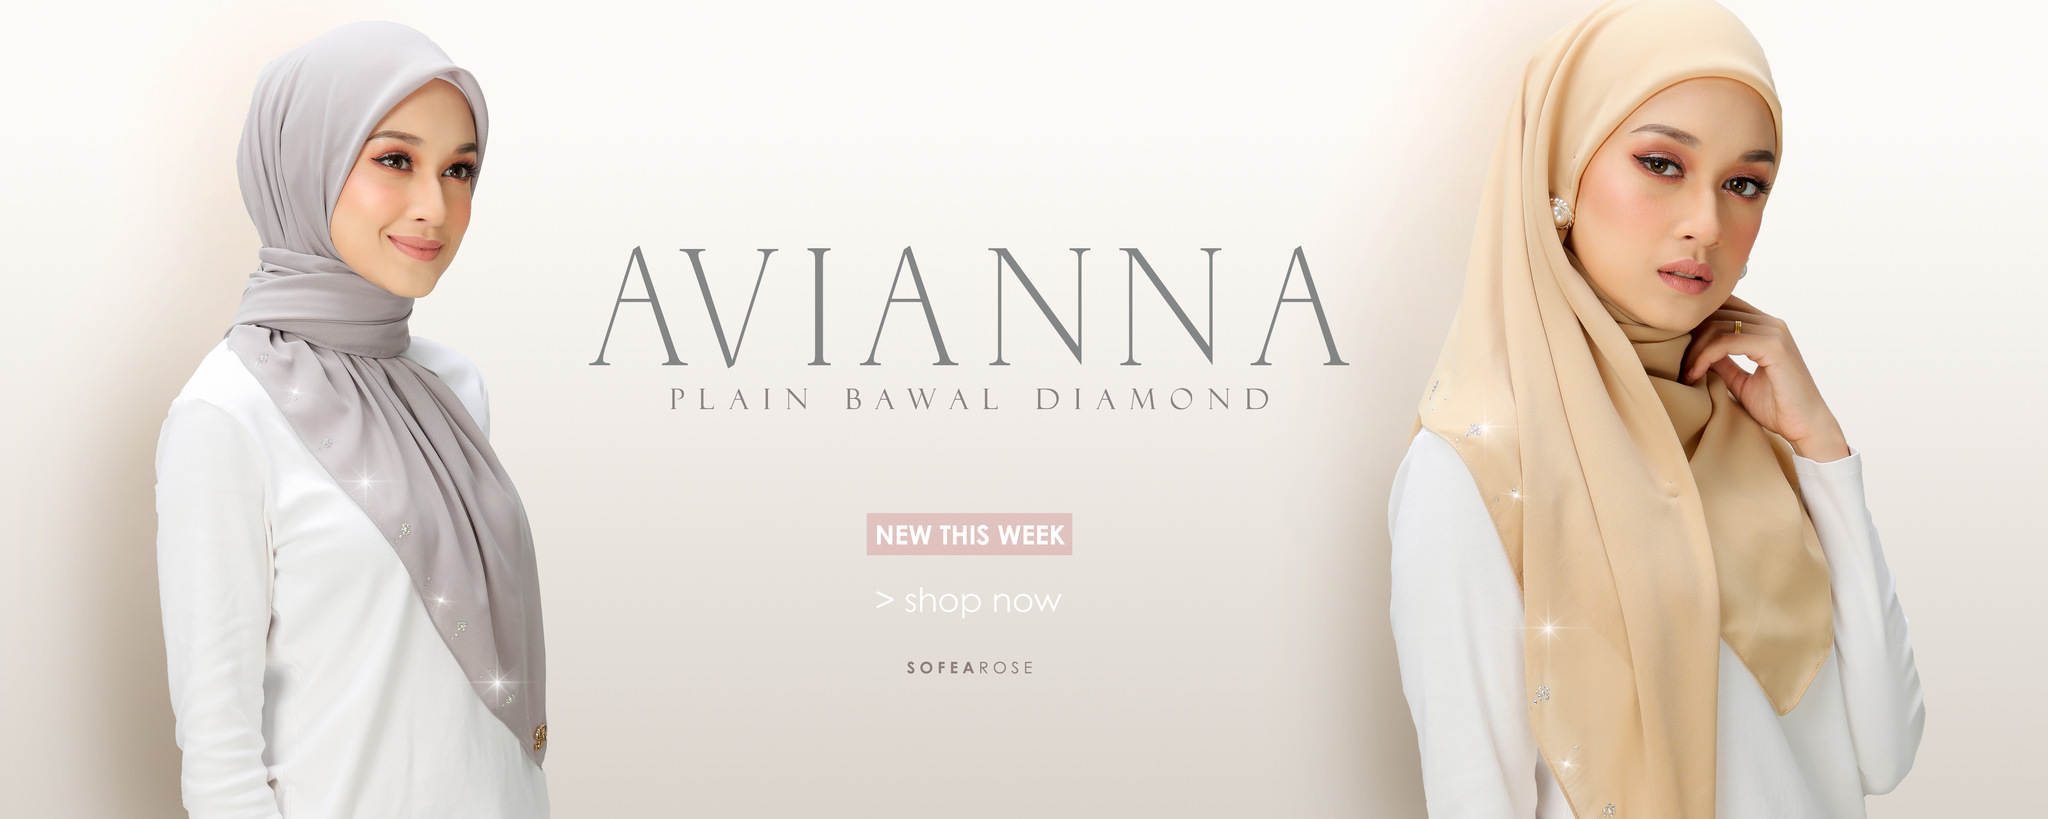 AVIANA-DIAMOND_Easy-Resize.com_